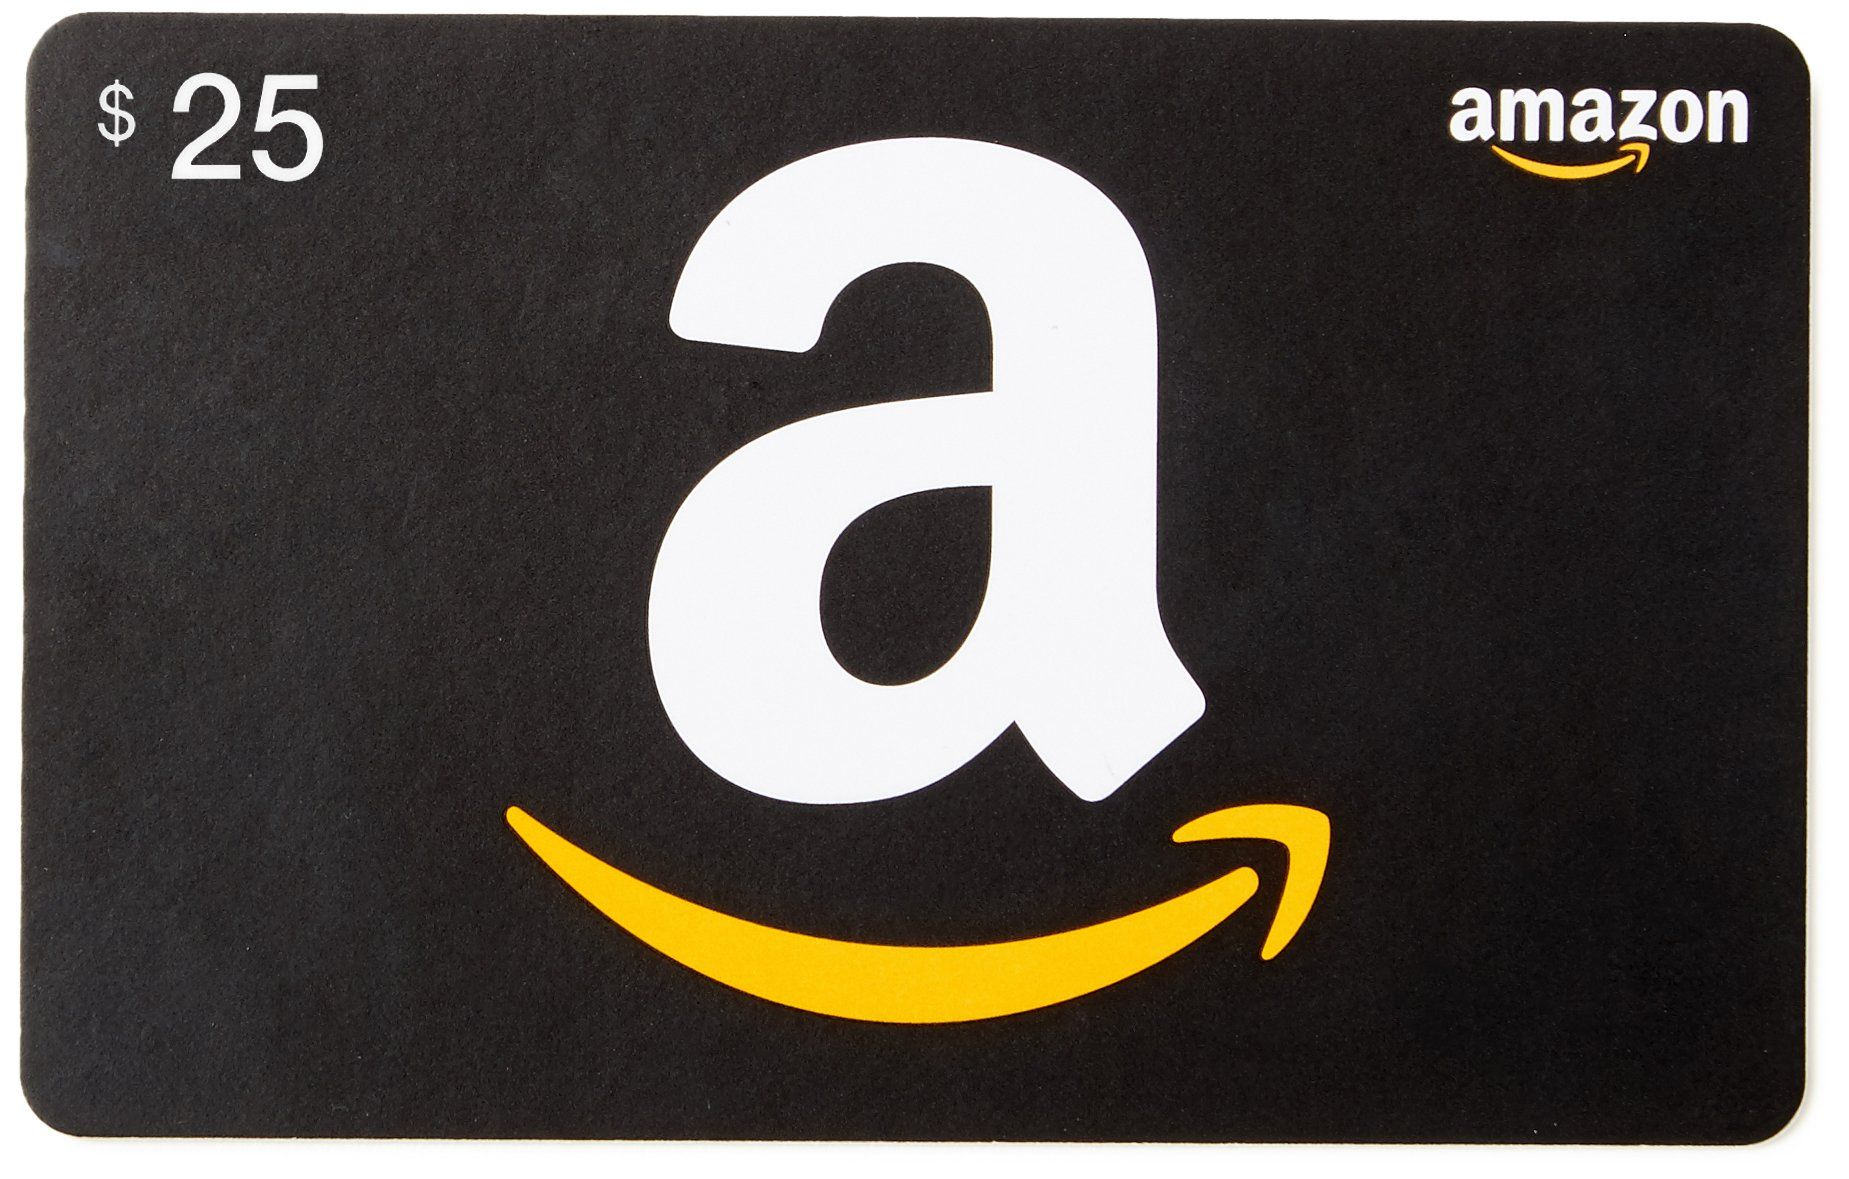 Amazon Com Gift Card In A Gold Reveal Gift Amazon Card Reveal Free Gift Cards Online Gift Card Giveaway Amazon Gift Card Free